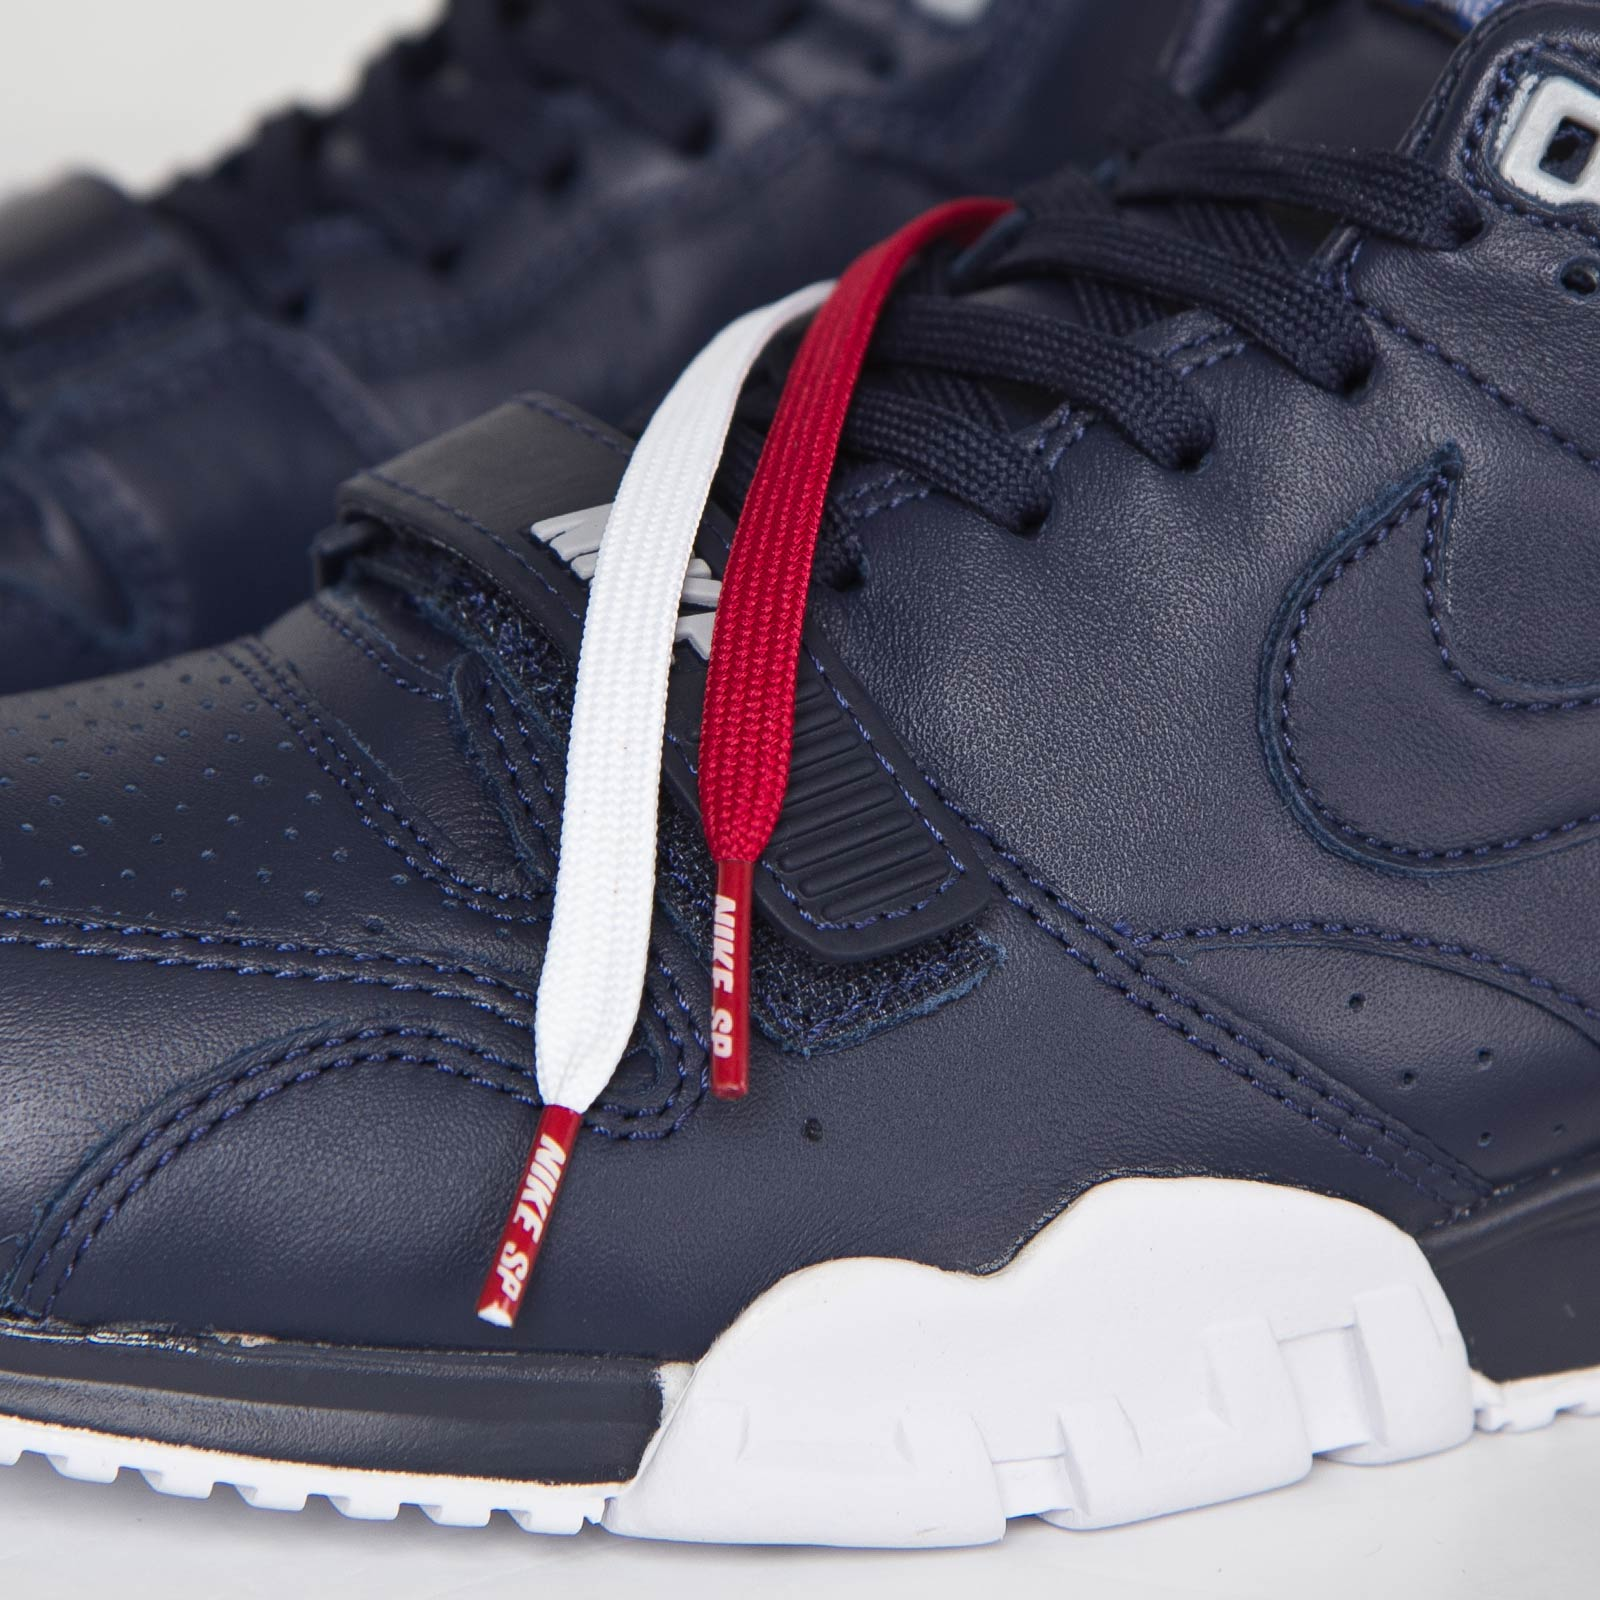 83f7d00b112 Nike Air Trainer 1 Mid SP   Fragment - 806942-441 - Sneakersnstuff ...